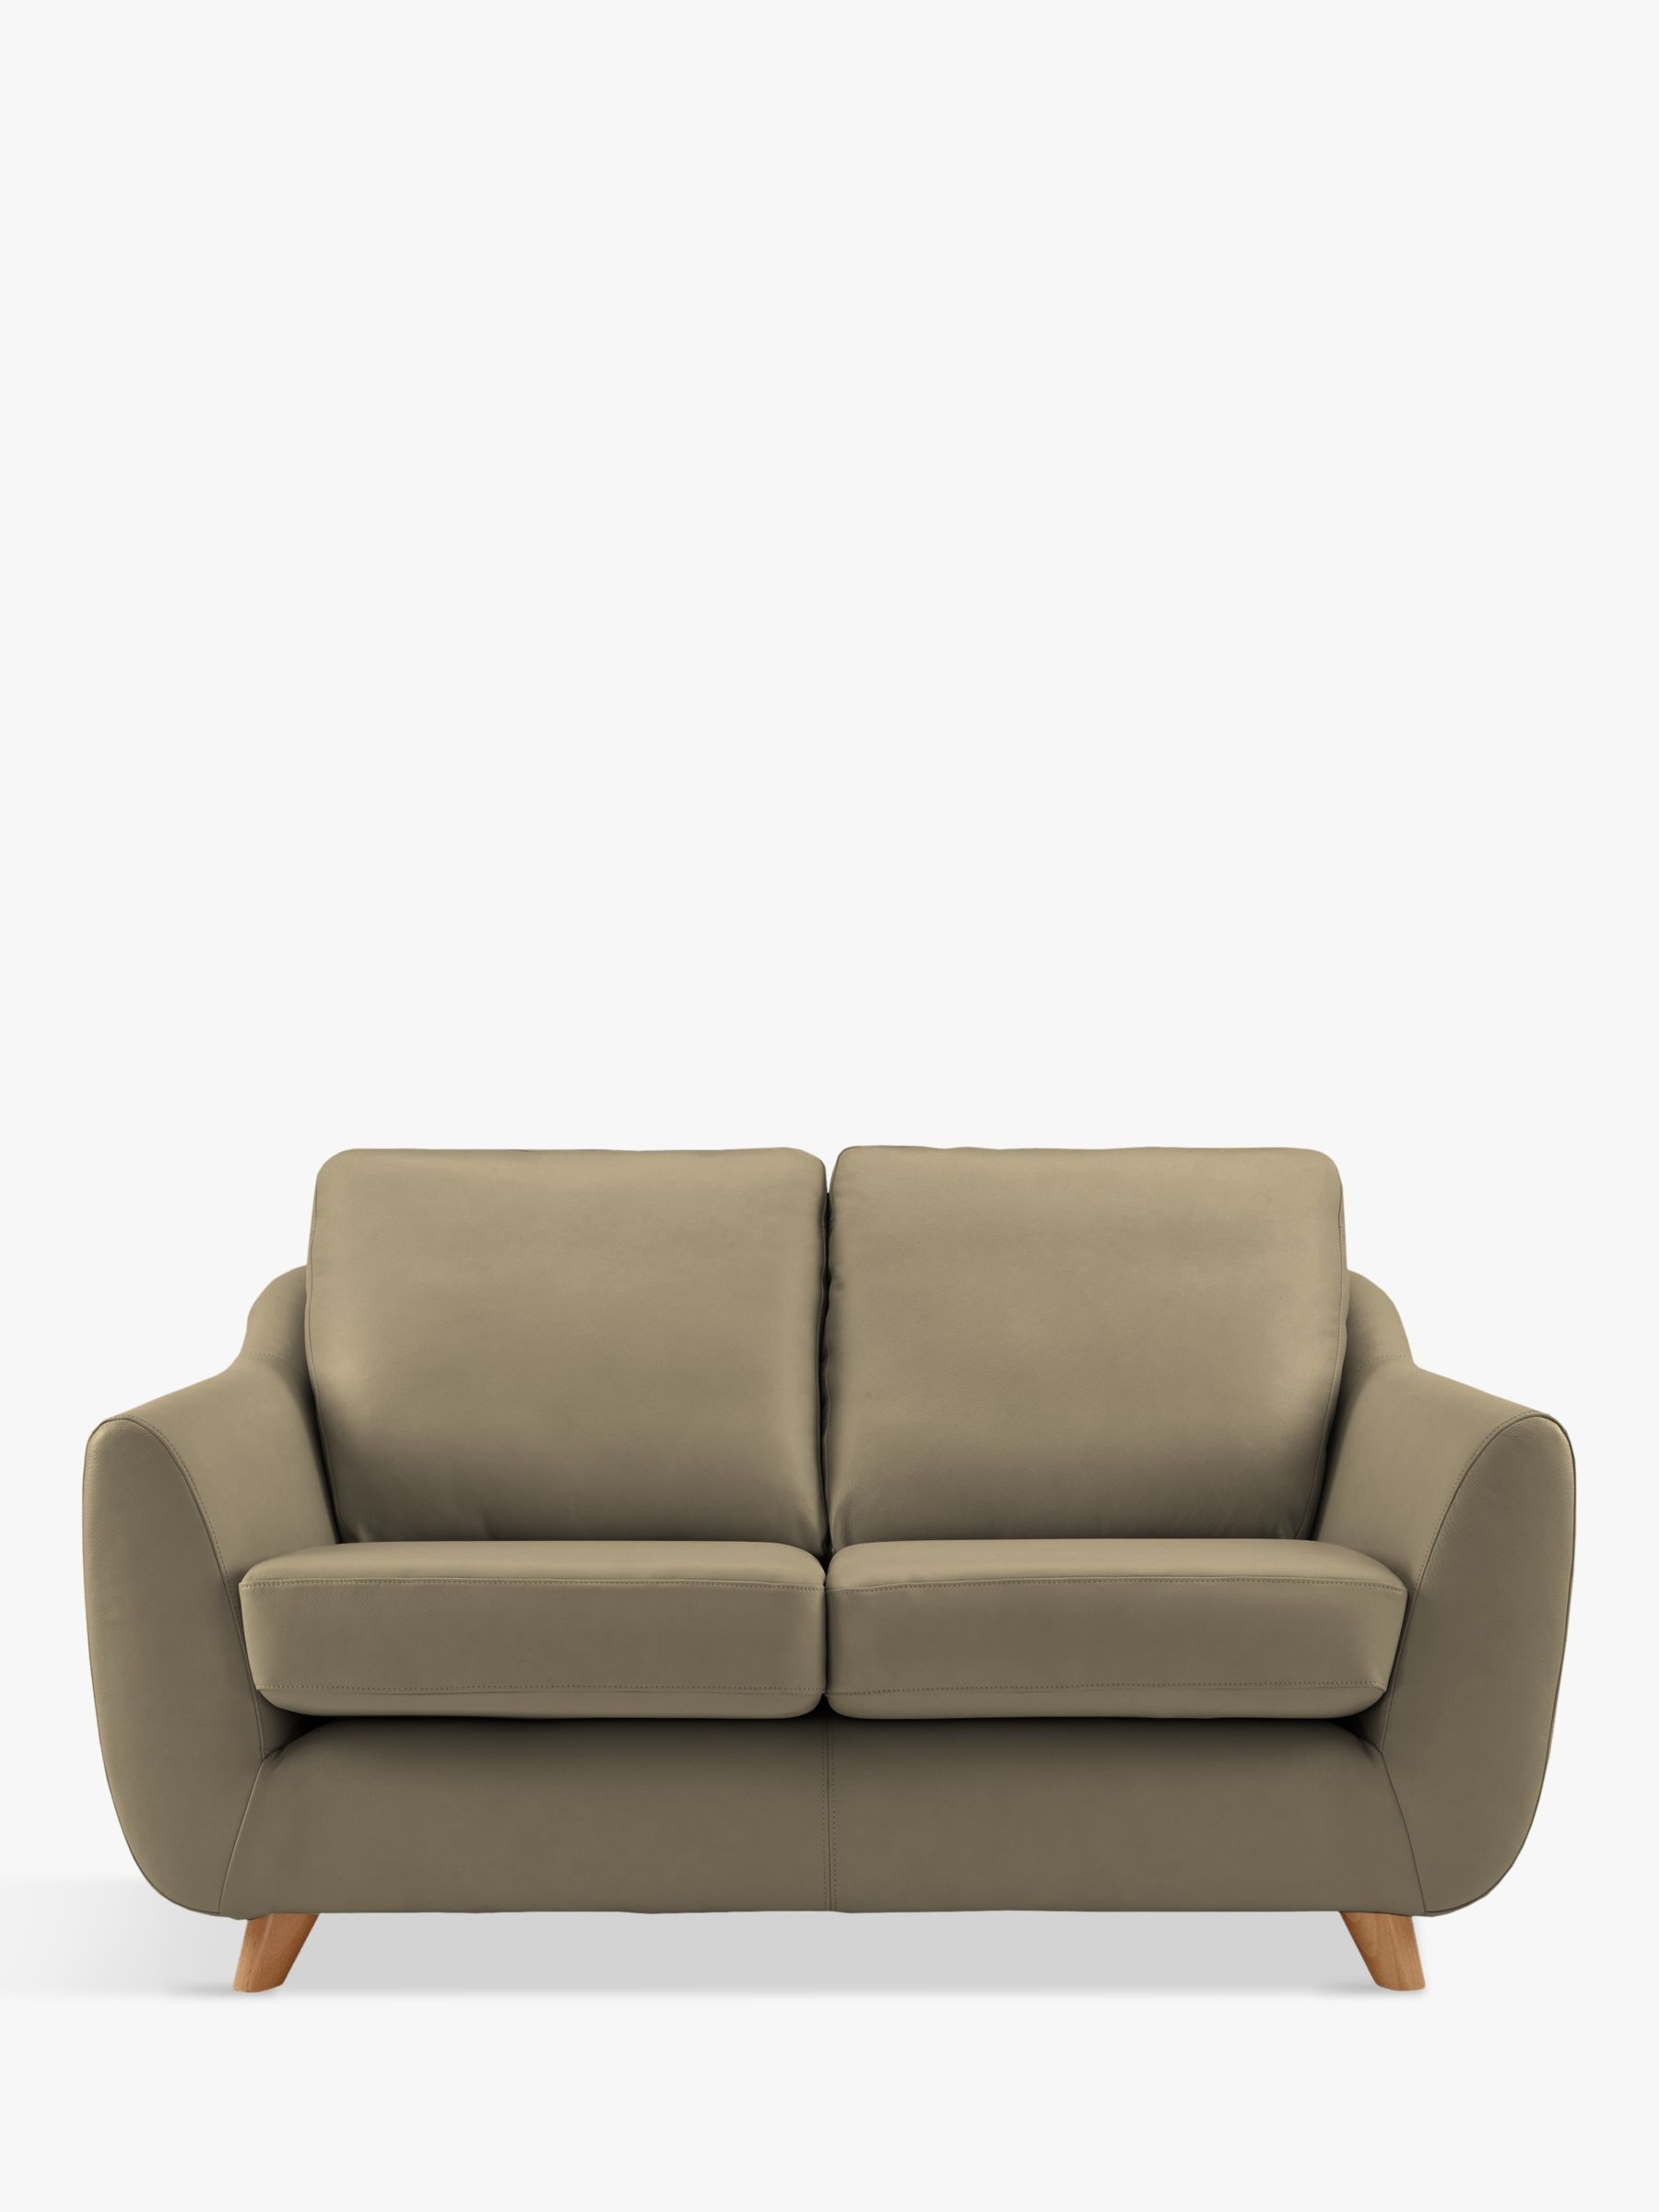 G Plan Vintage G Plan Vintage The Sixty Seven Small 2 Seater Leather Sofa